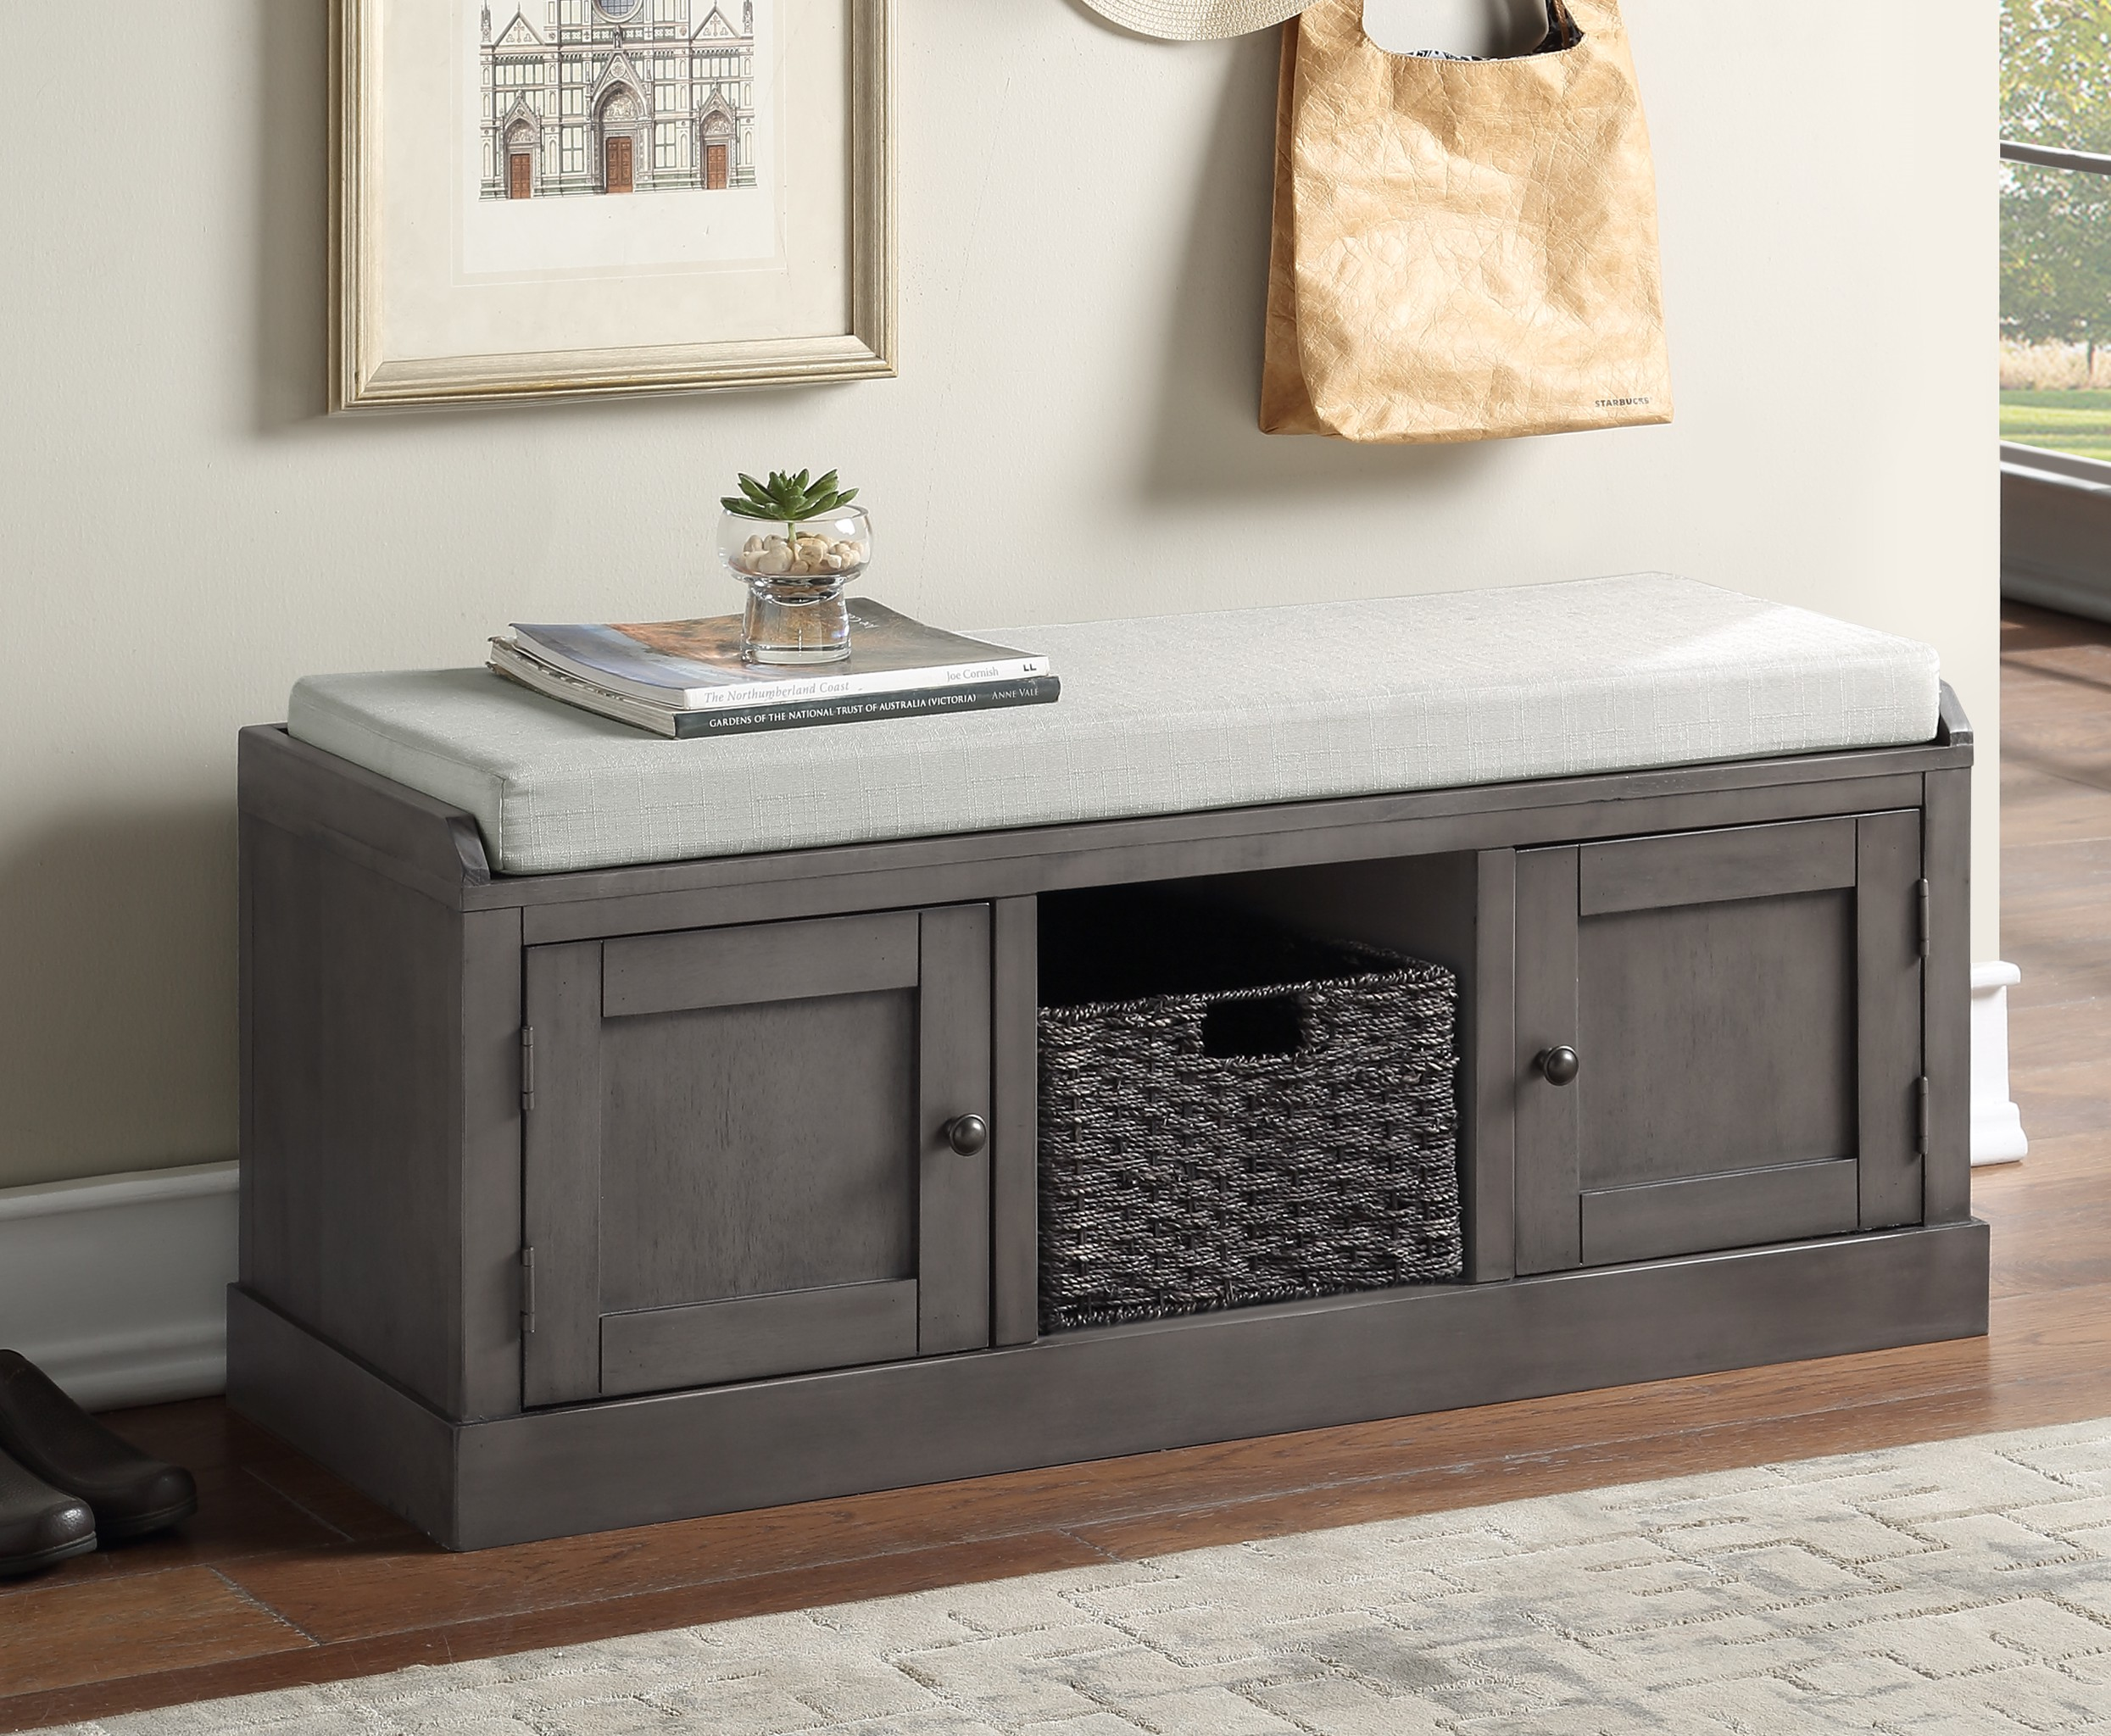 Yofe Entryway Storage Bench Rustic Grey Storage Organizer Bench Entry Storage Bench With 2 Cabinets And 1 Basket Wood Entryway Shoe Bench With Cushioned Seat Bedroom Storage Ottoman Bench R3494 Walmart Com